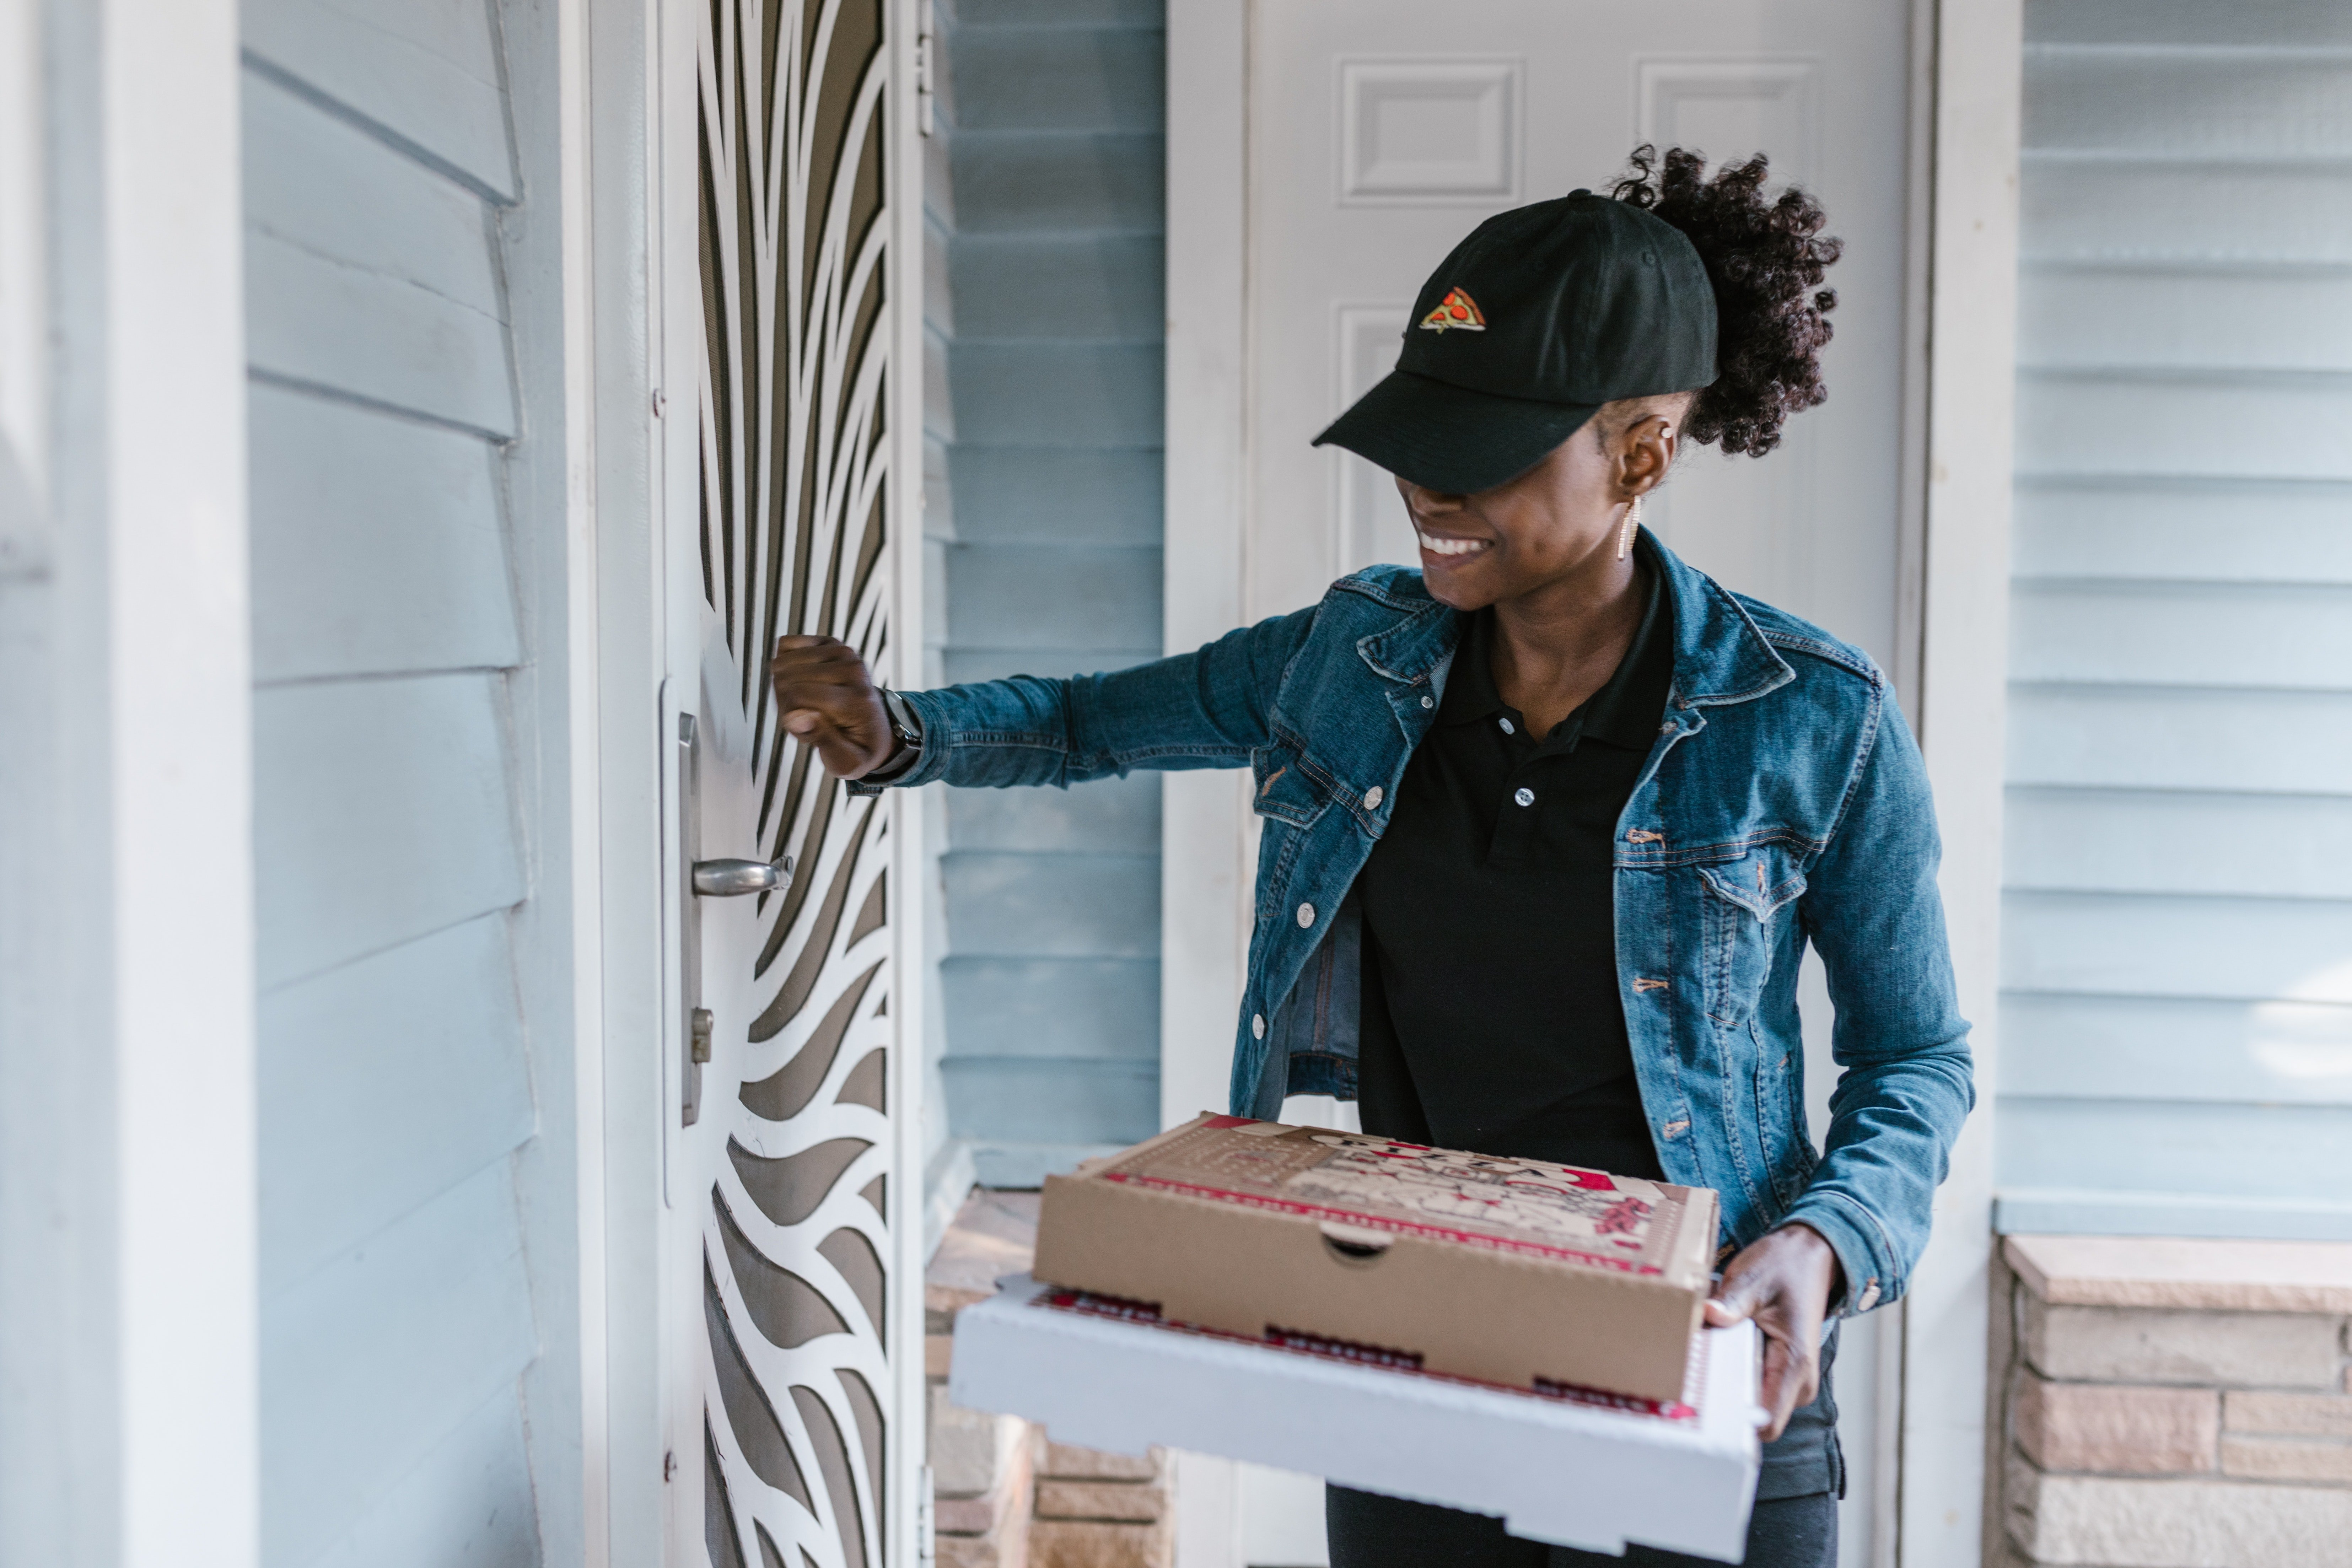 A delivery woman knocking on the door. | Photo: Pexels/RODNAE Productions